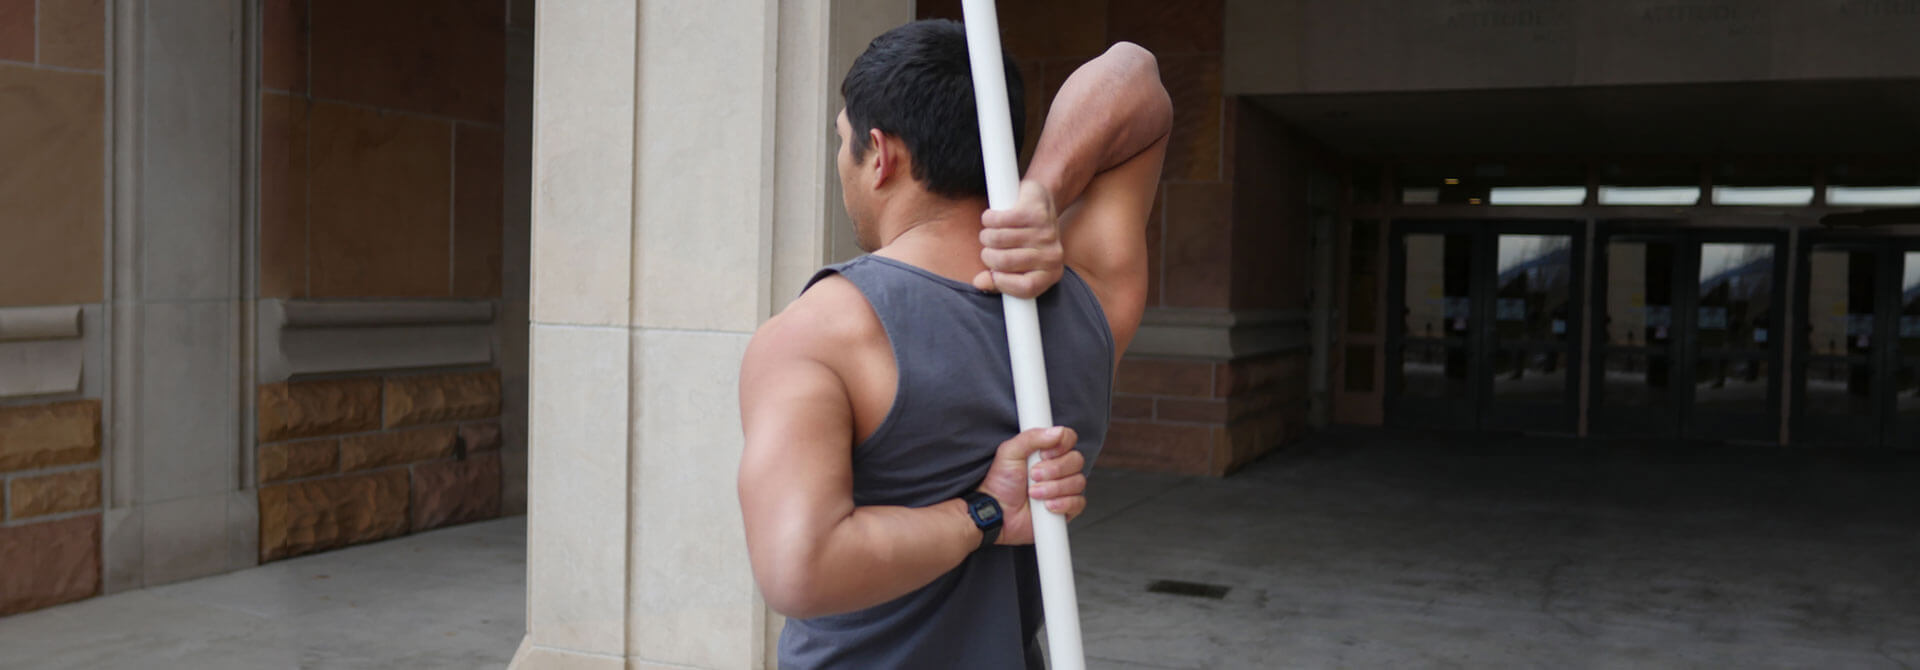 GymnasticBodies Athlete performs a shoulder mobility exercise for improved quality of life.